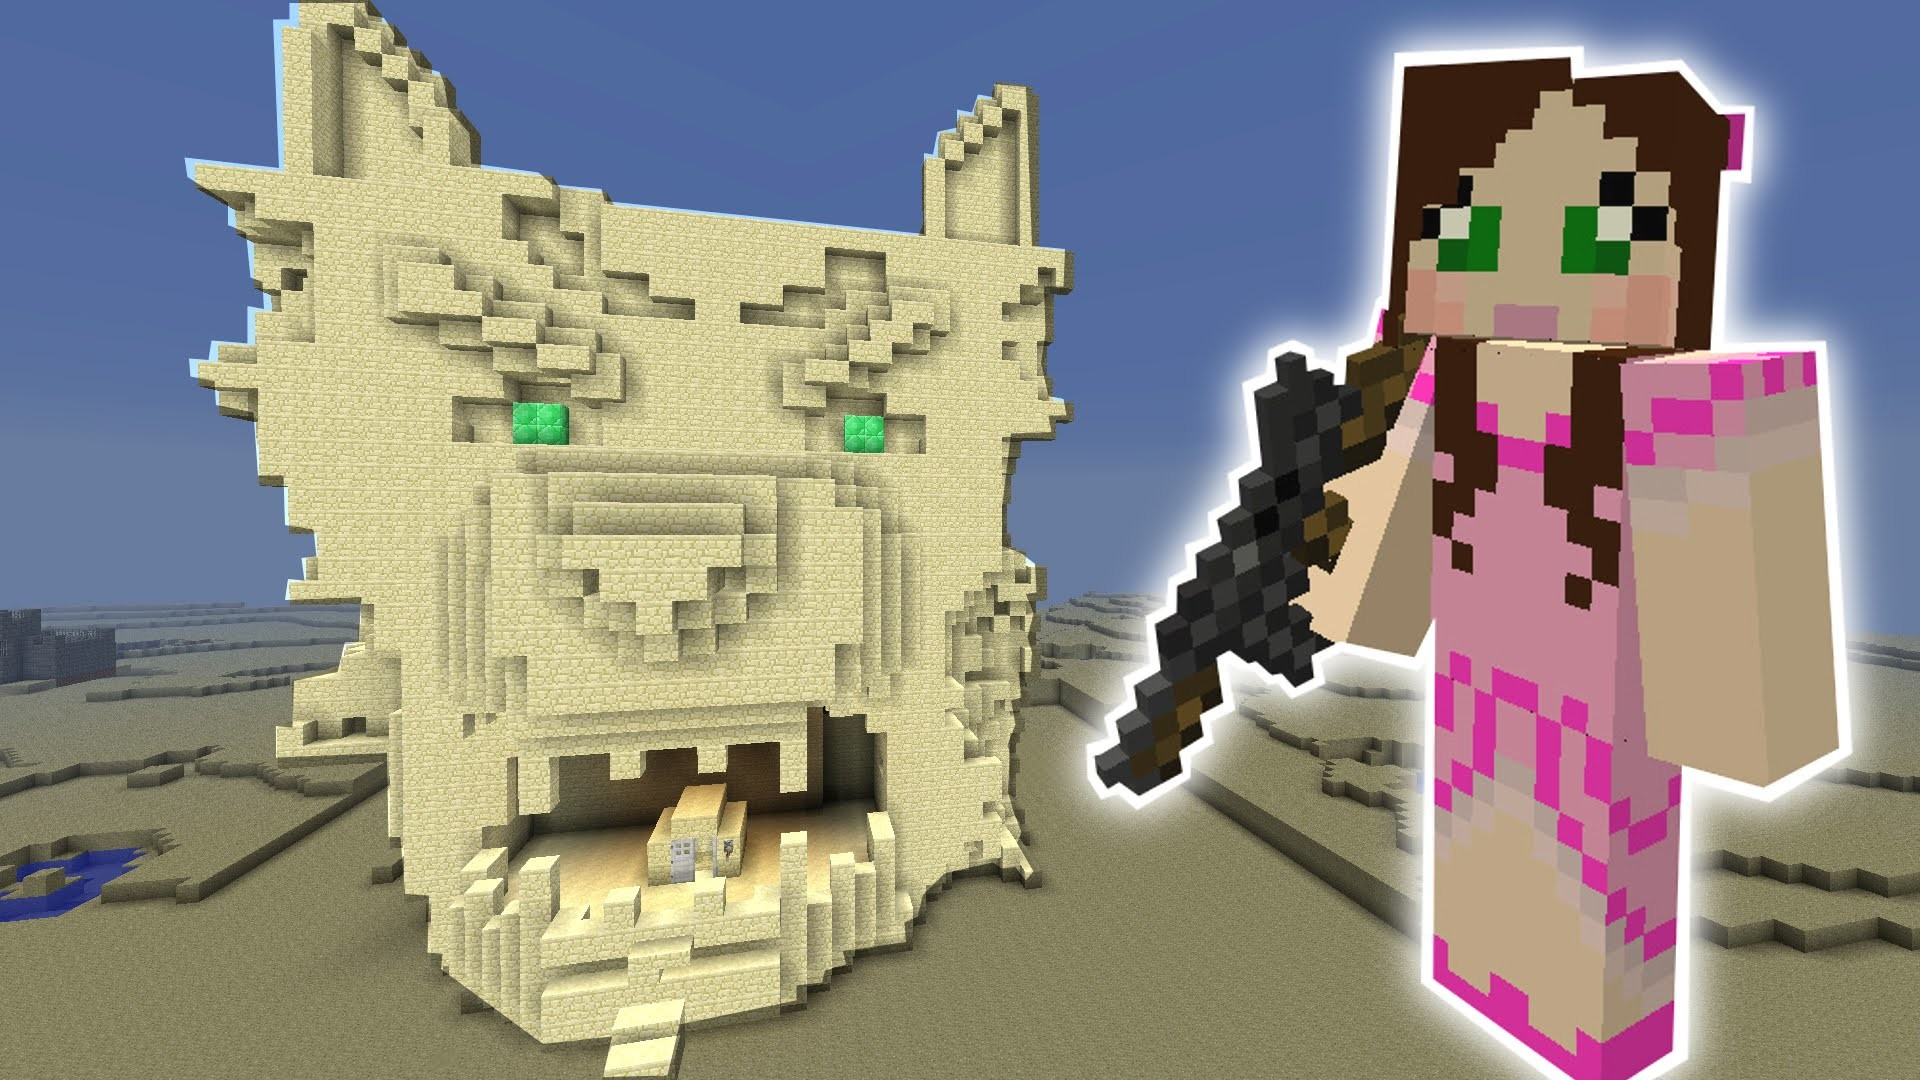 Some Pat And Jen Minecraft Mods ❤❤❤ Pat And Jen PopularMMOs Minecraft lucky  block Minecraft Popularmmos with jen Minecraft Popularmmos challenge games  …